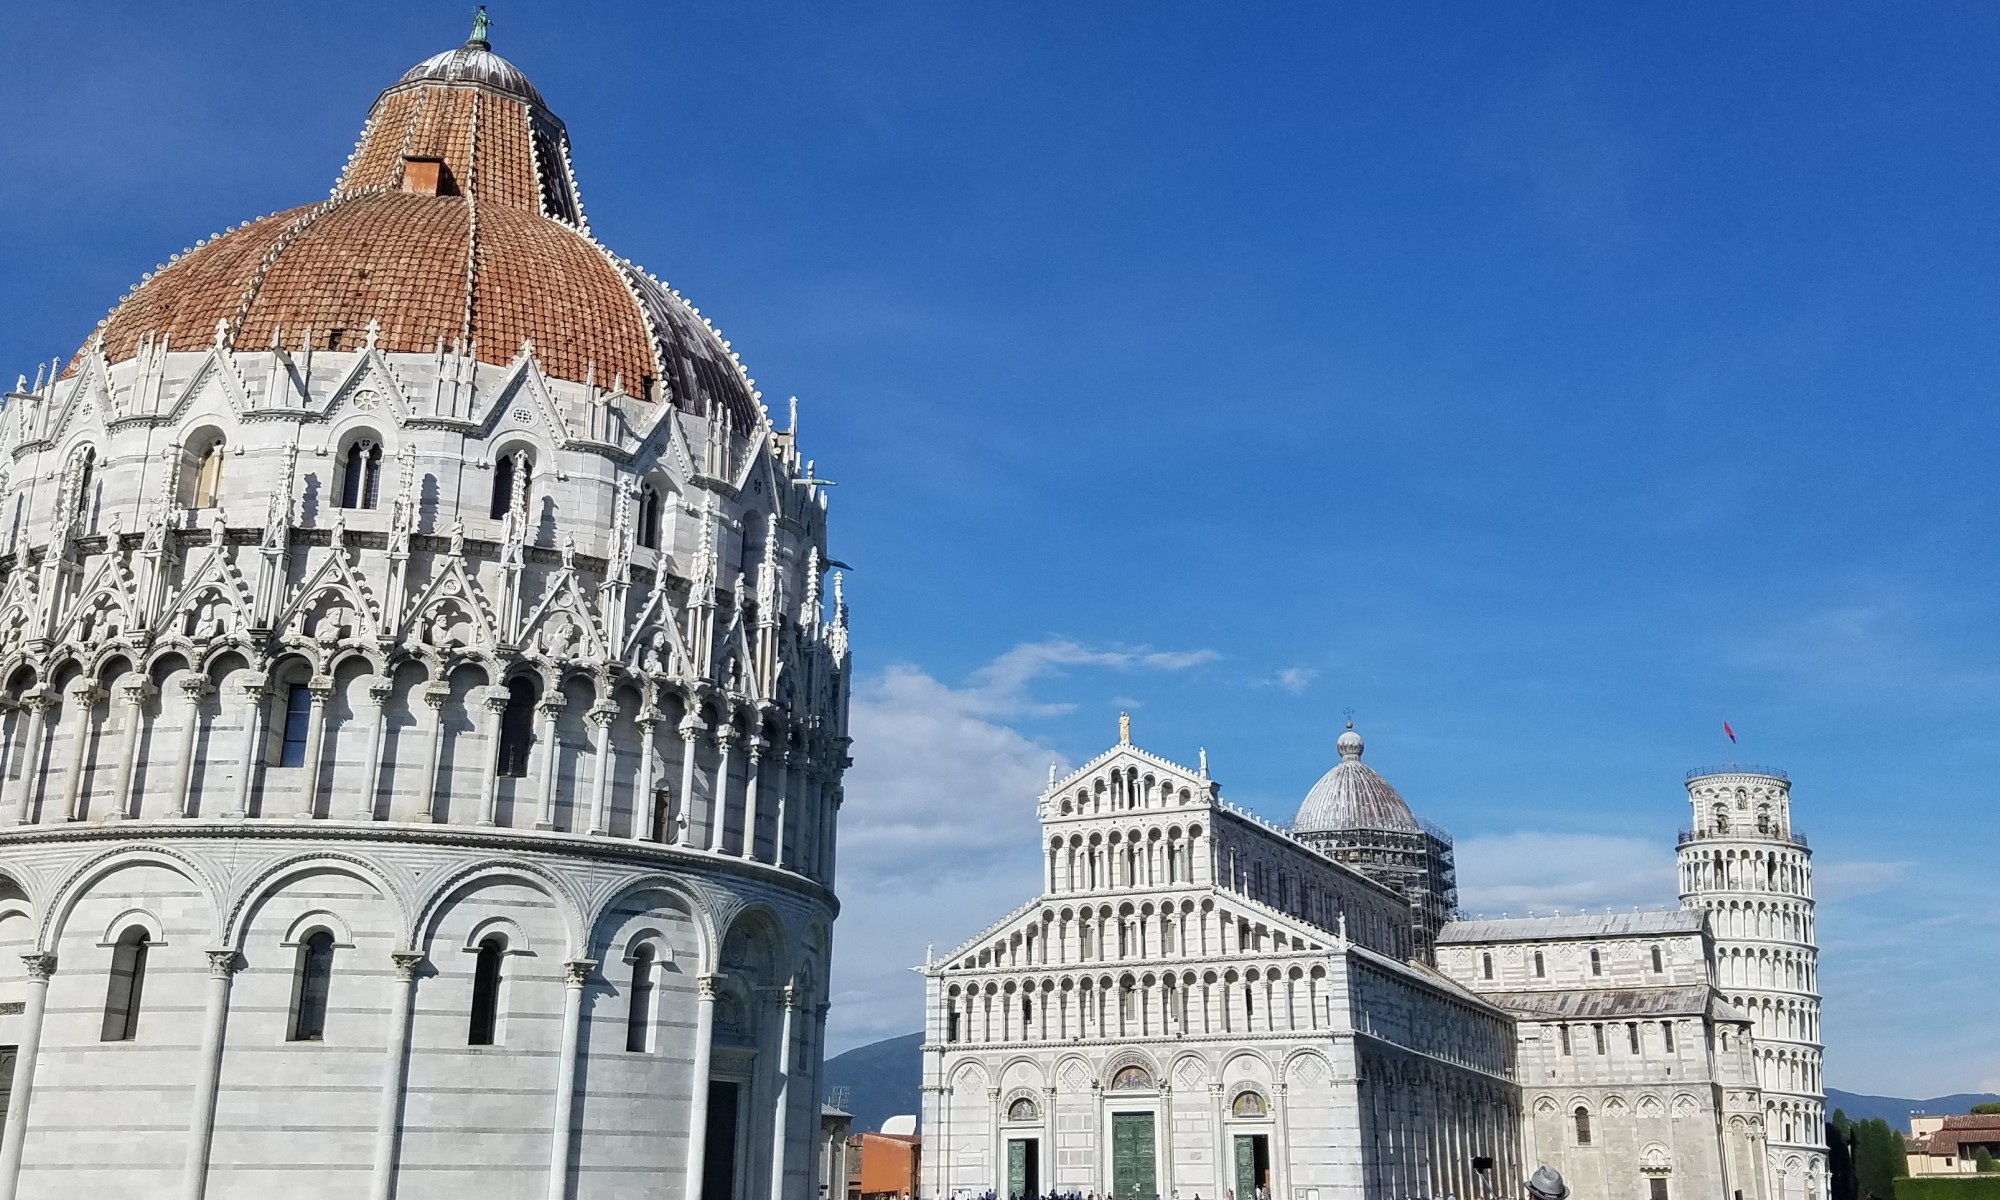 Italian Florence: Italy Travel Tip: Take An Inexpensive Half-day Trip To